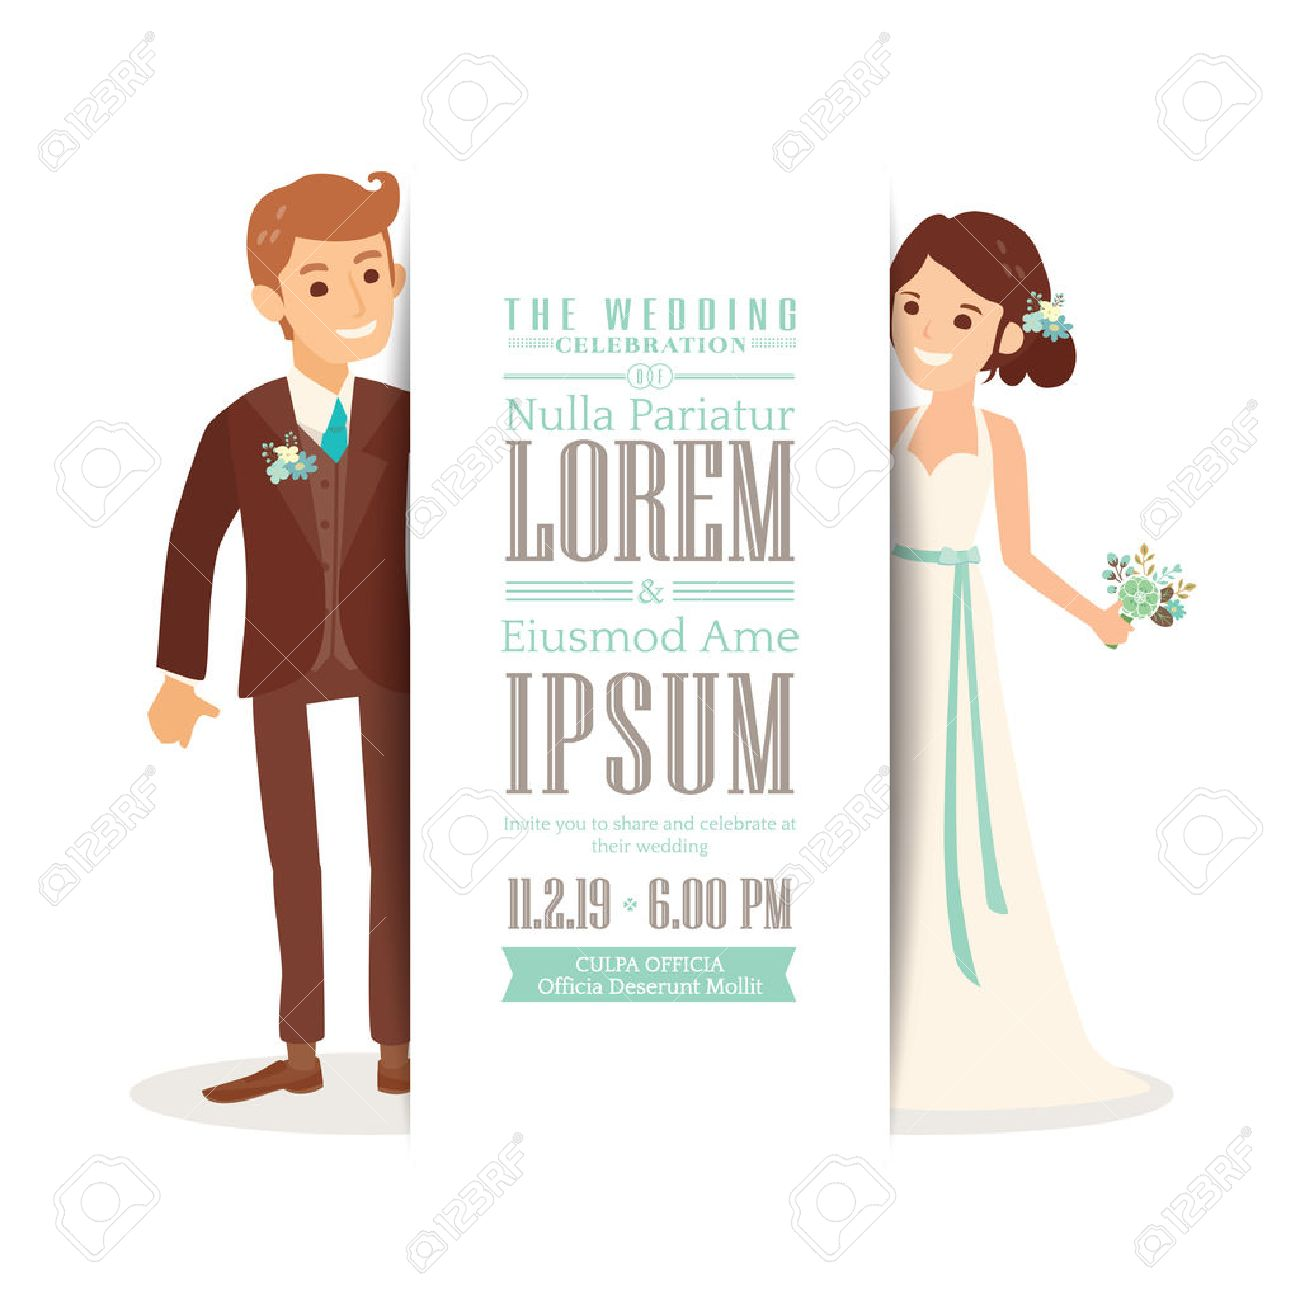 Wedding Couple Groom And Bride Cartoon On White Background, Wedding ...